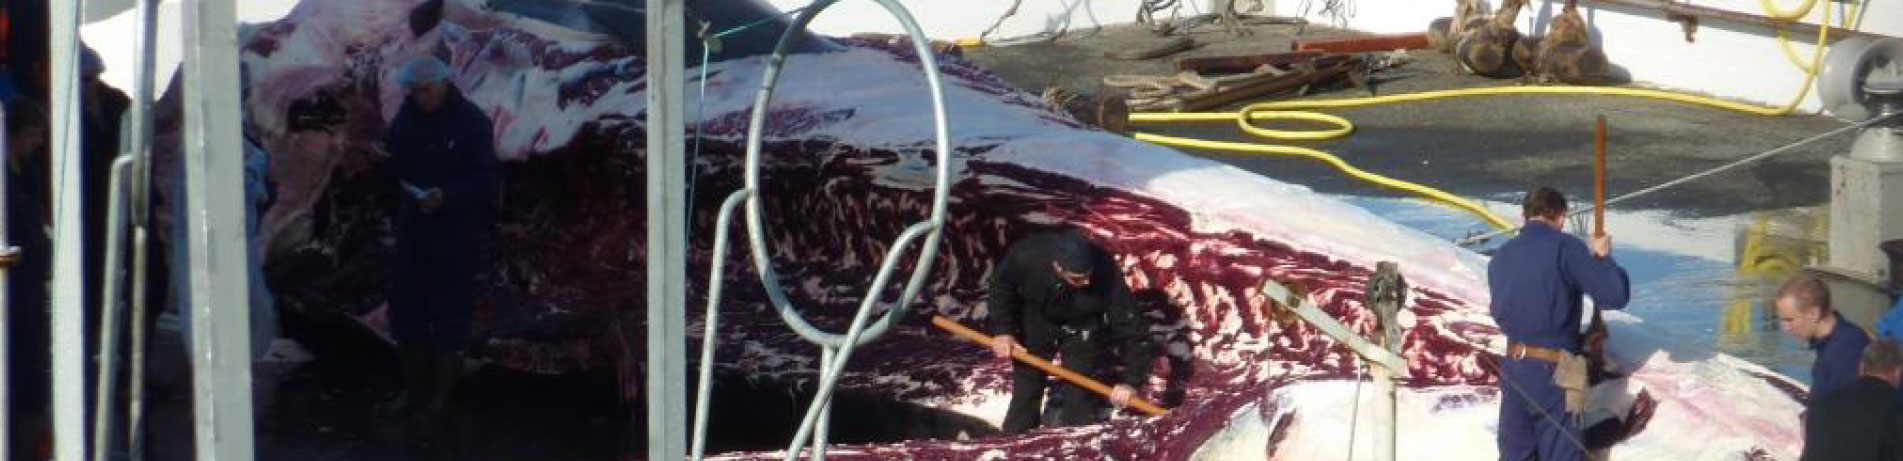 Workers butchering a fin whale at Miosandur whaling station, Hvalfjordur, Iceland (August 2014)